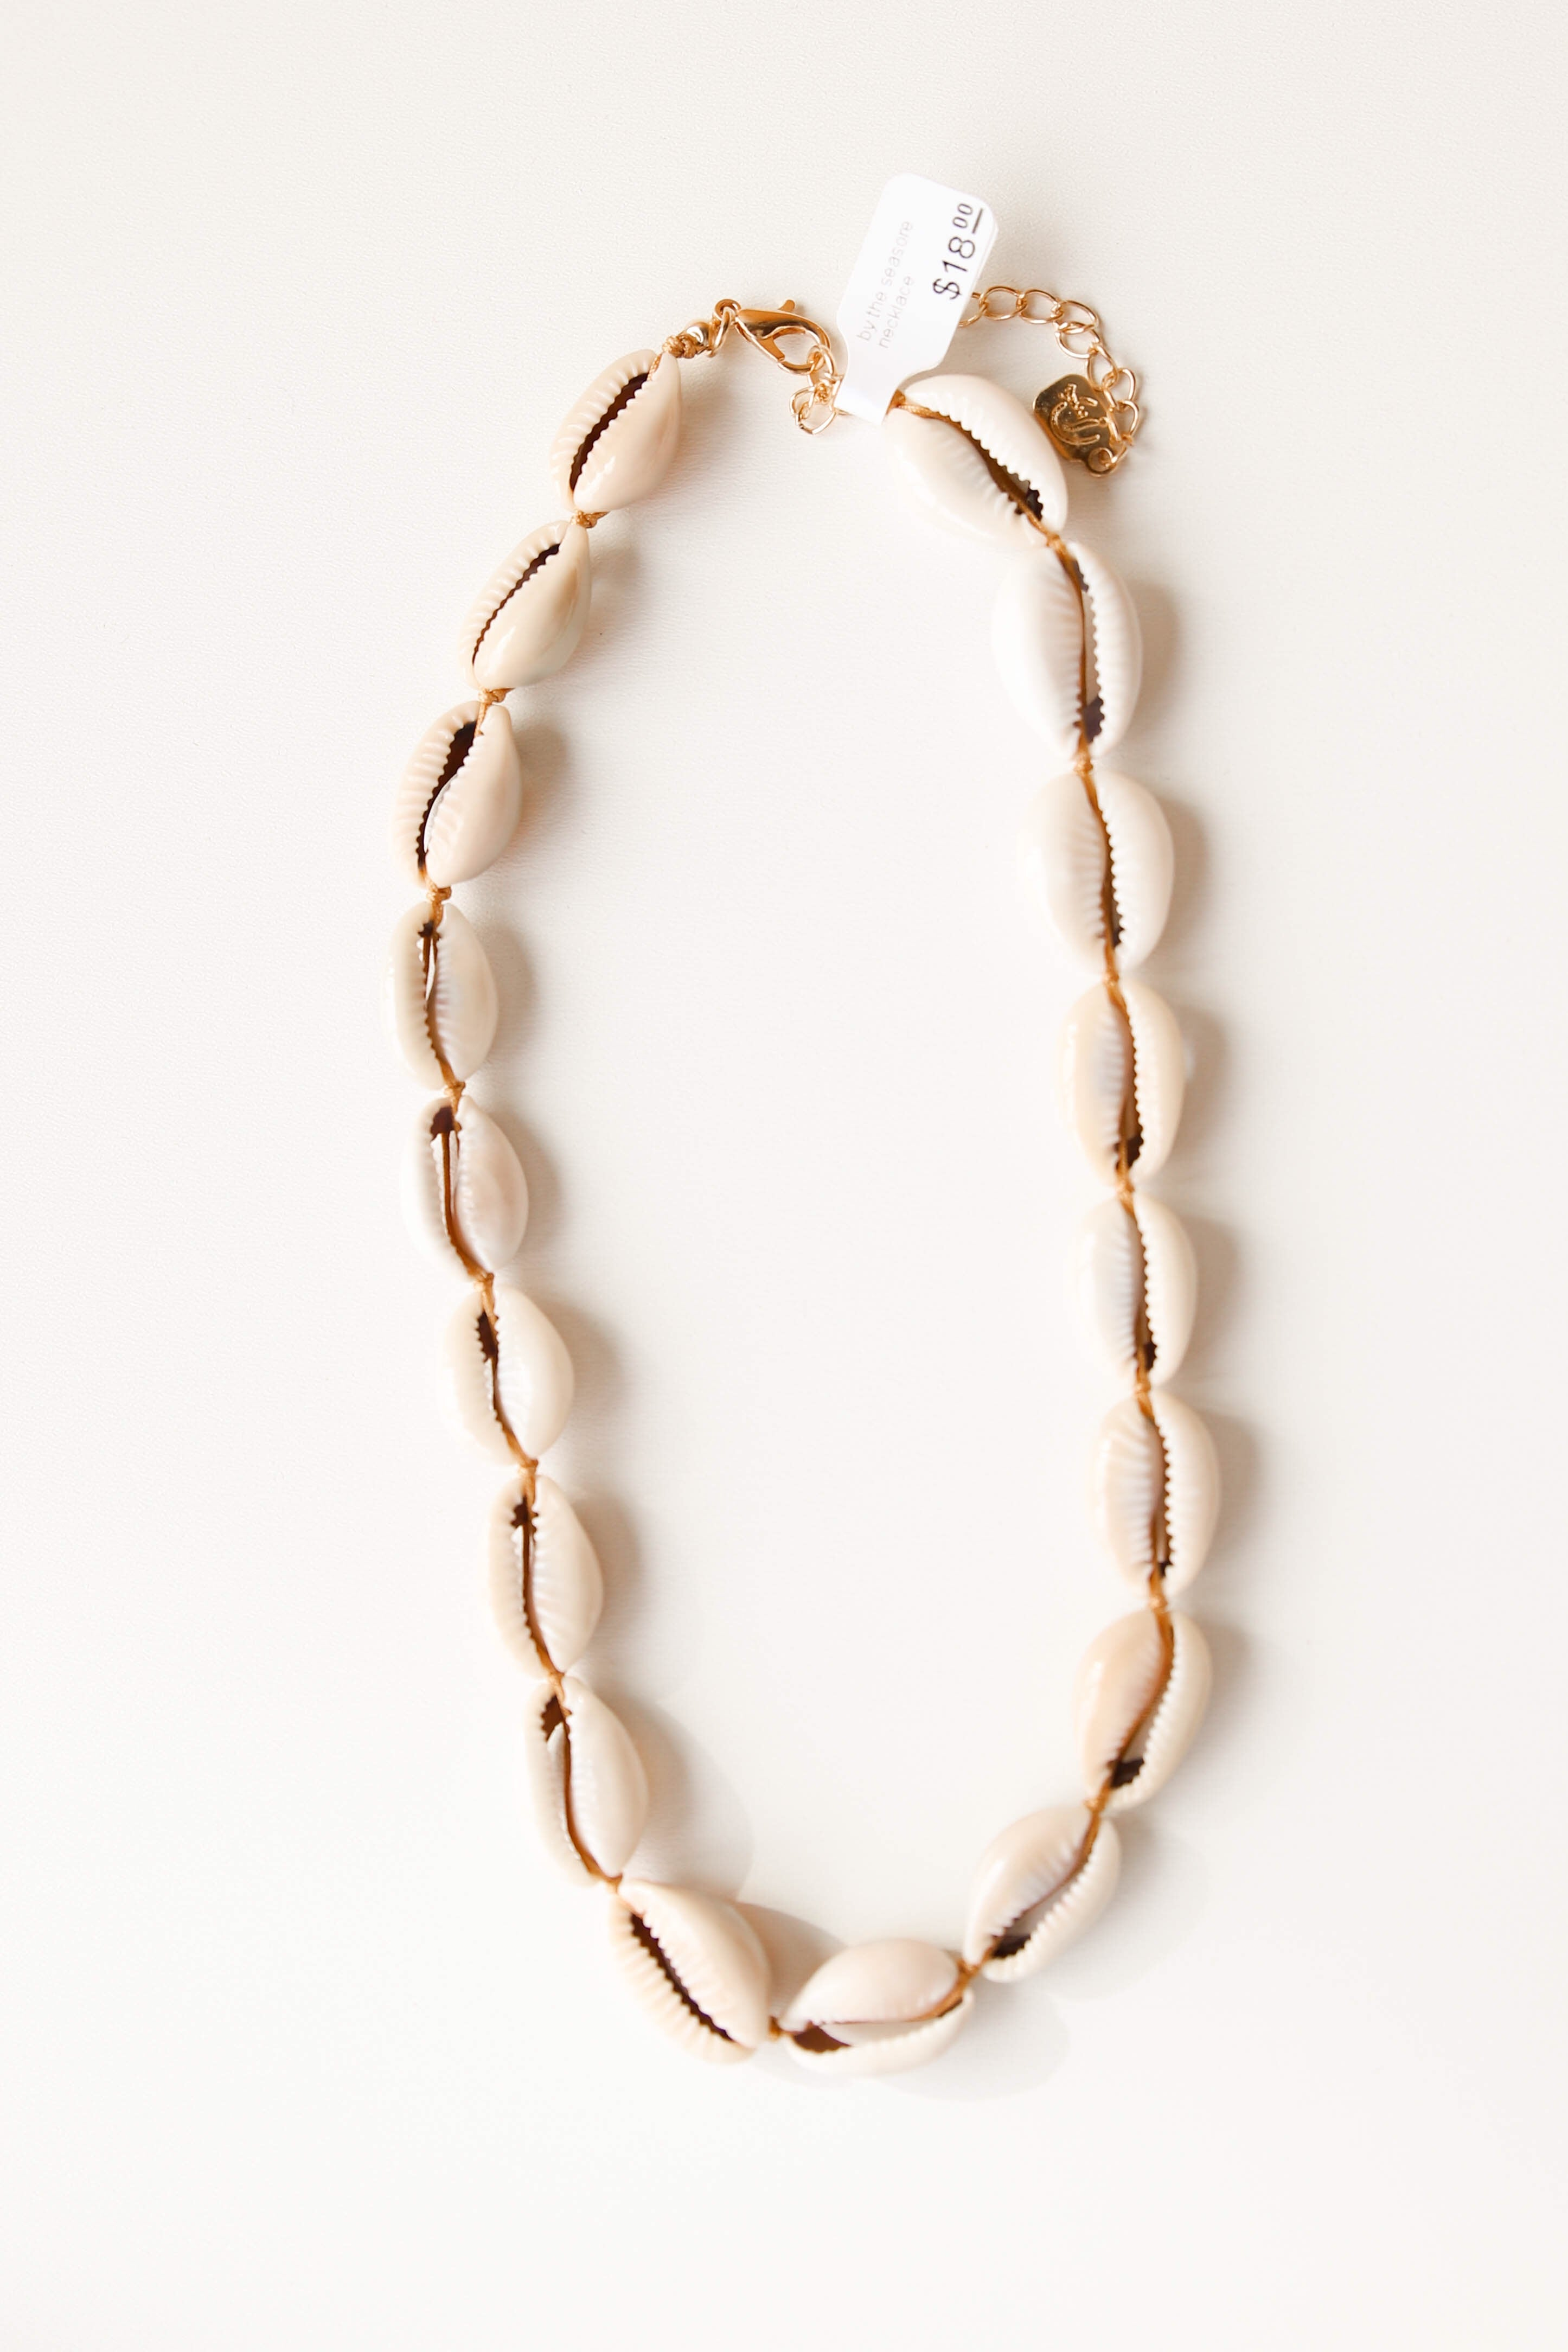 [shop name], by the seasore necklace